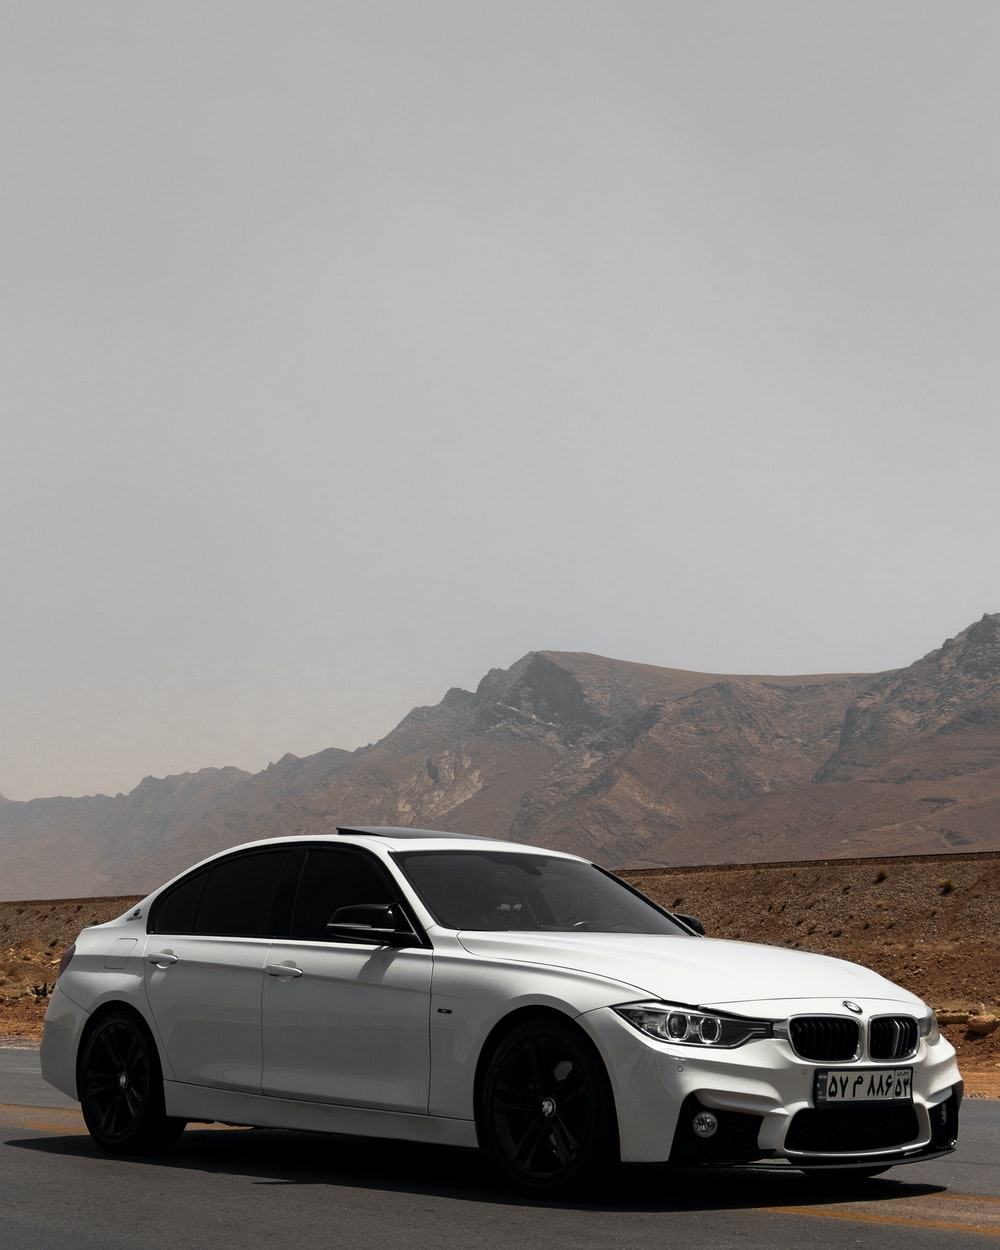 white bmw x series on brown field during daytime